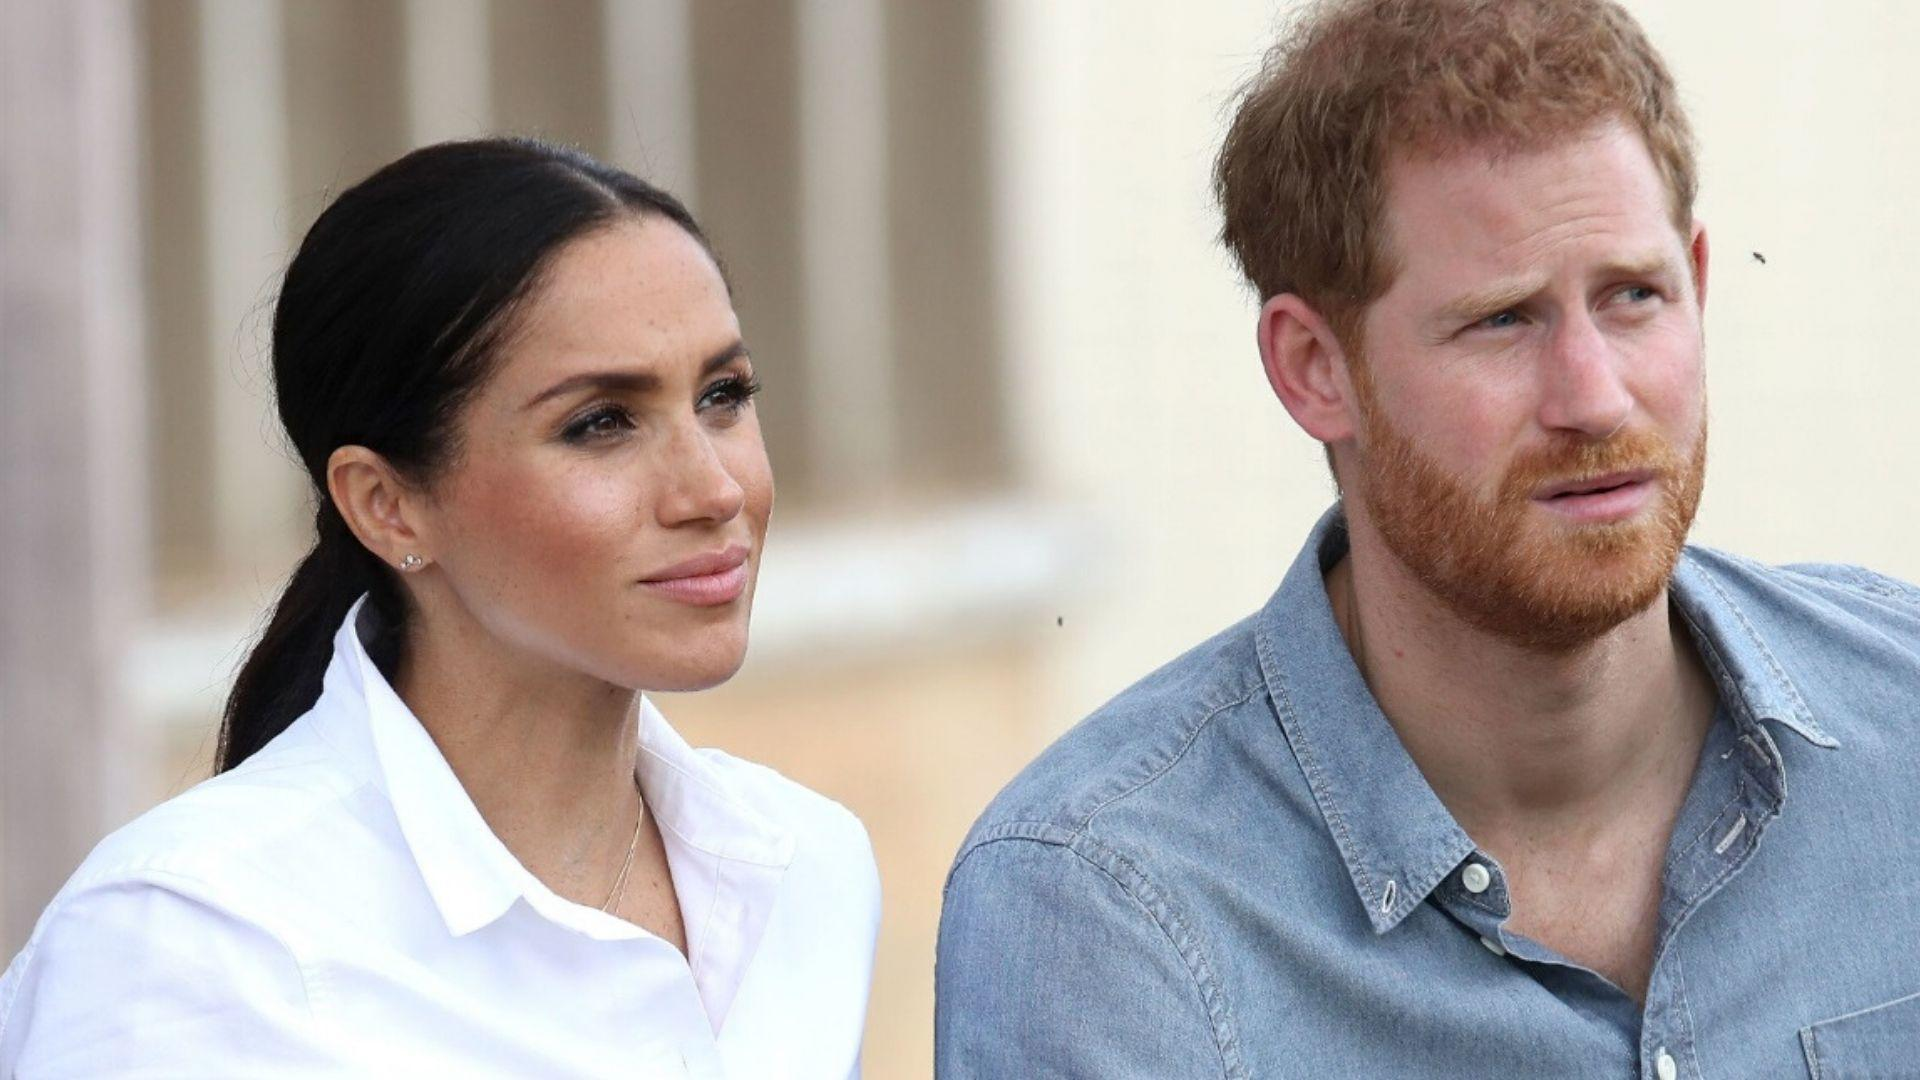 Here's How Canadian Locals Are Helping Protect Meghan And Harry's Privacy